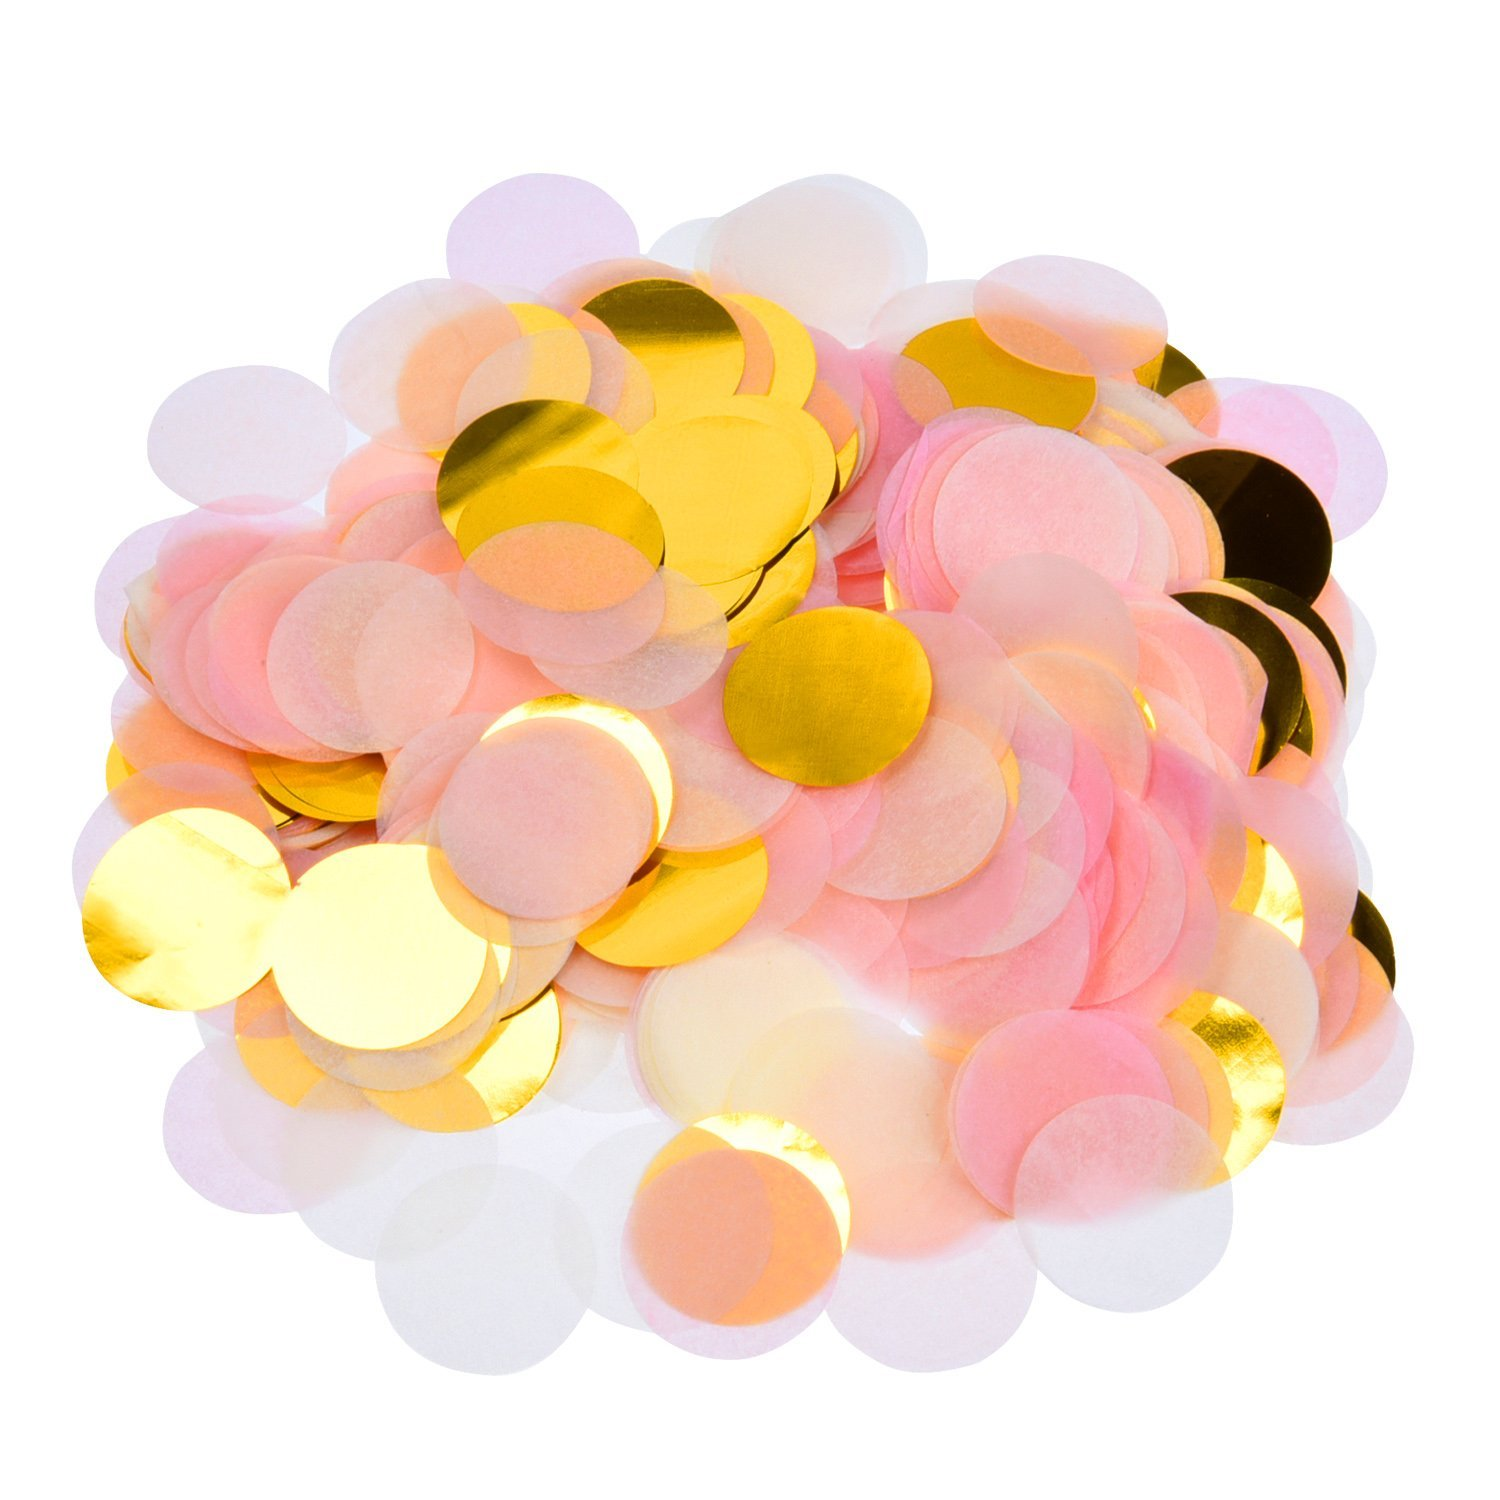 50g 5000+Pieces Paper Confetti 1 Inch Round Tissue Paper Table Confetti Dots for Wedding ...